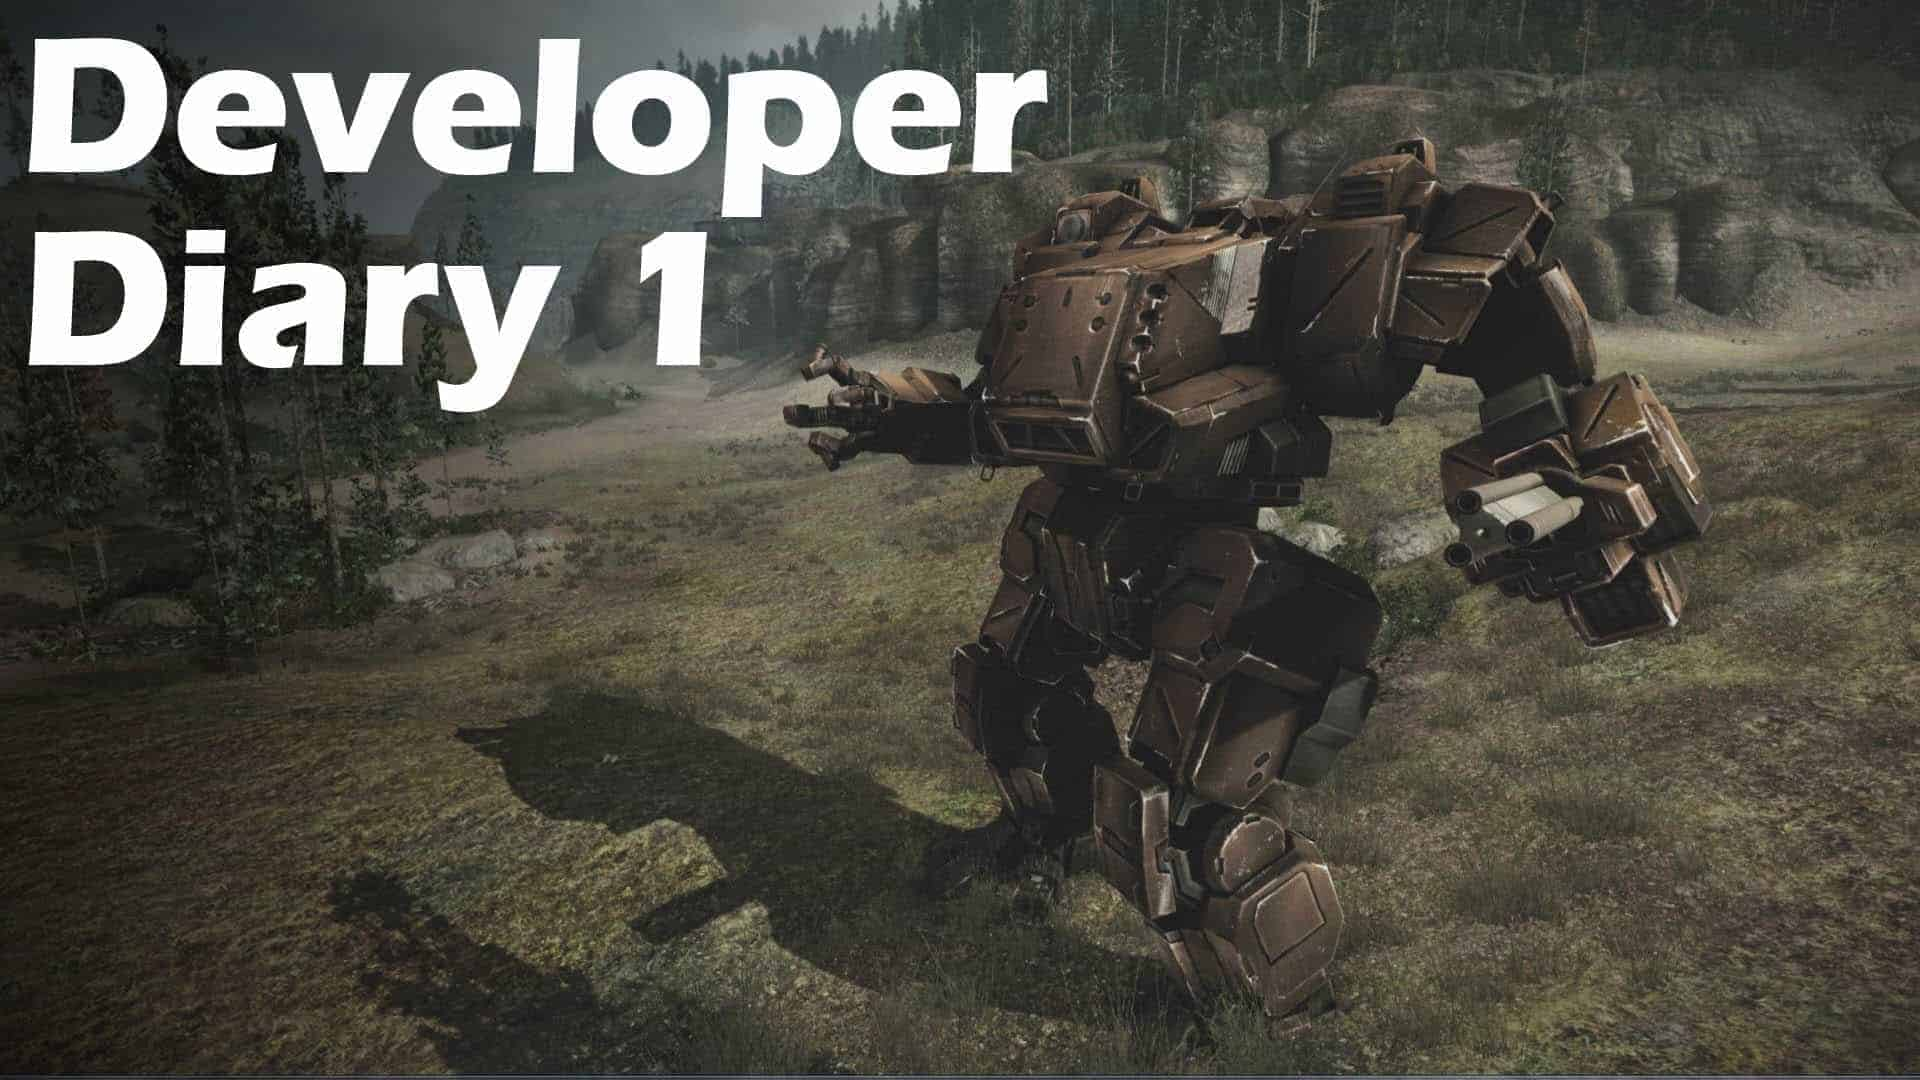 MechWarrior Online developer diary series